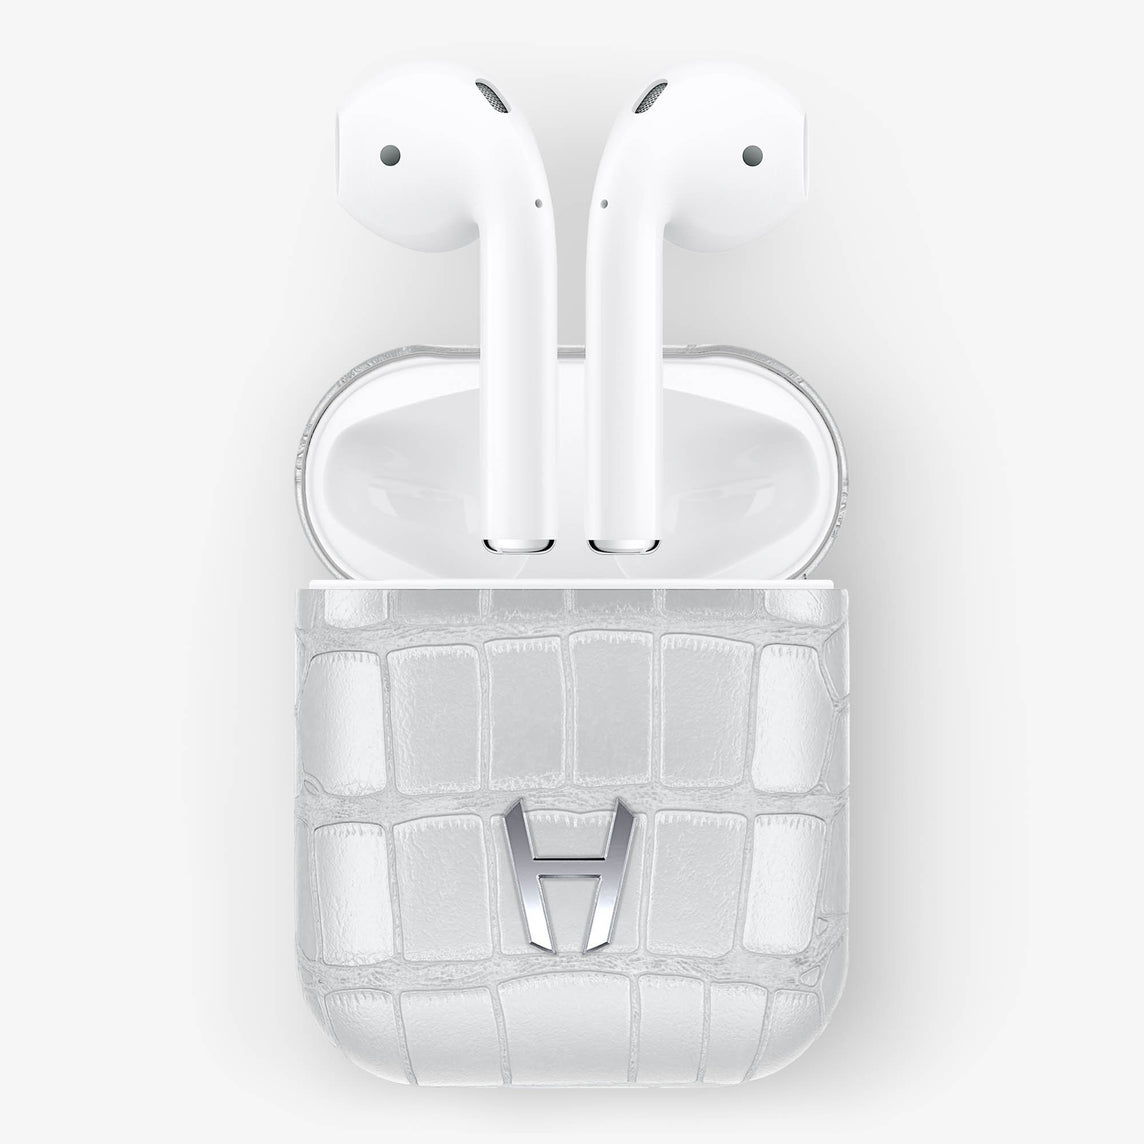 White Alligator Hadoro AirPods finishing stainless steel - Hadoro Luxury Cases